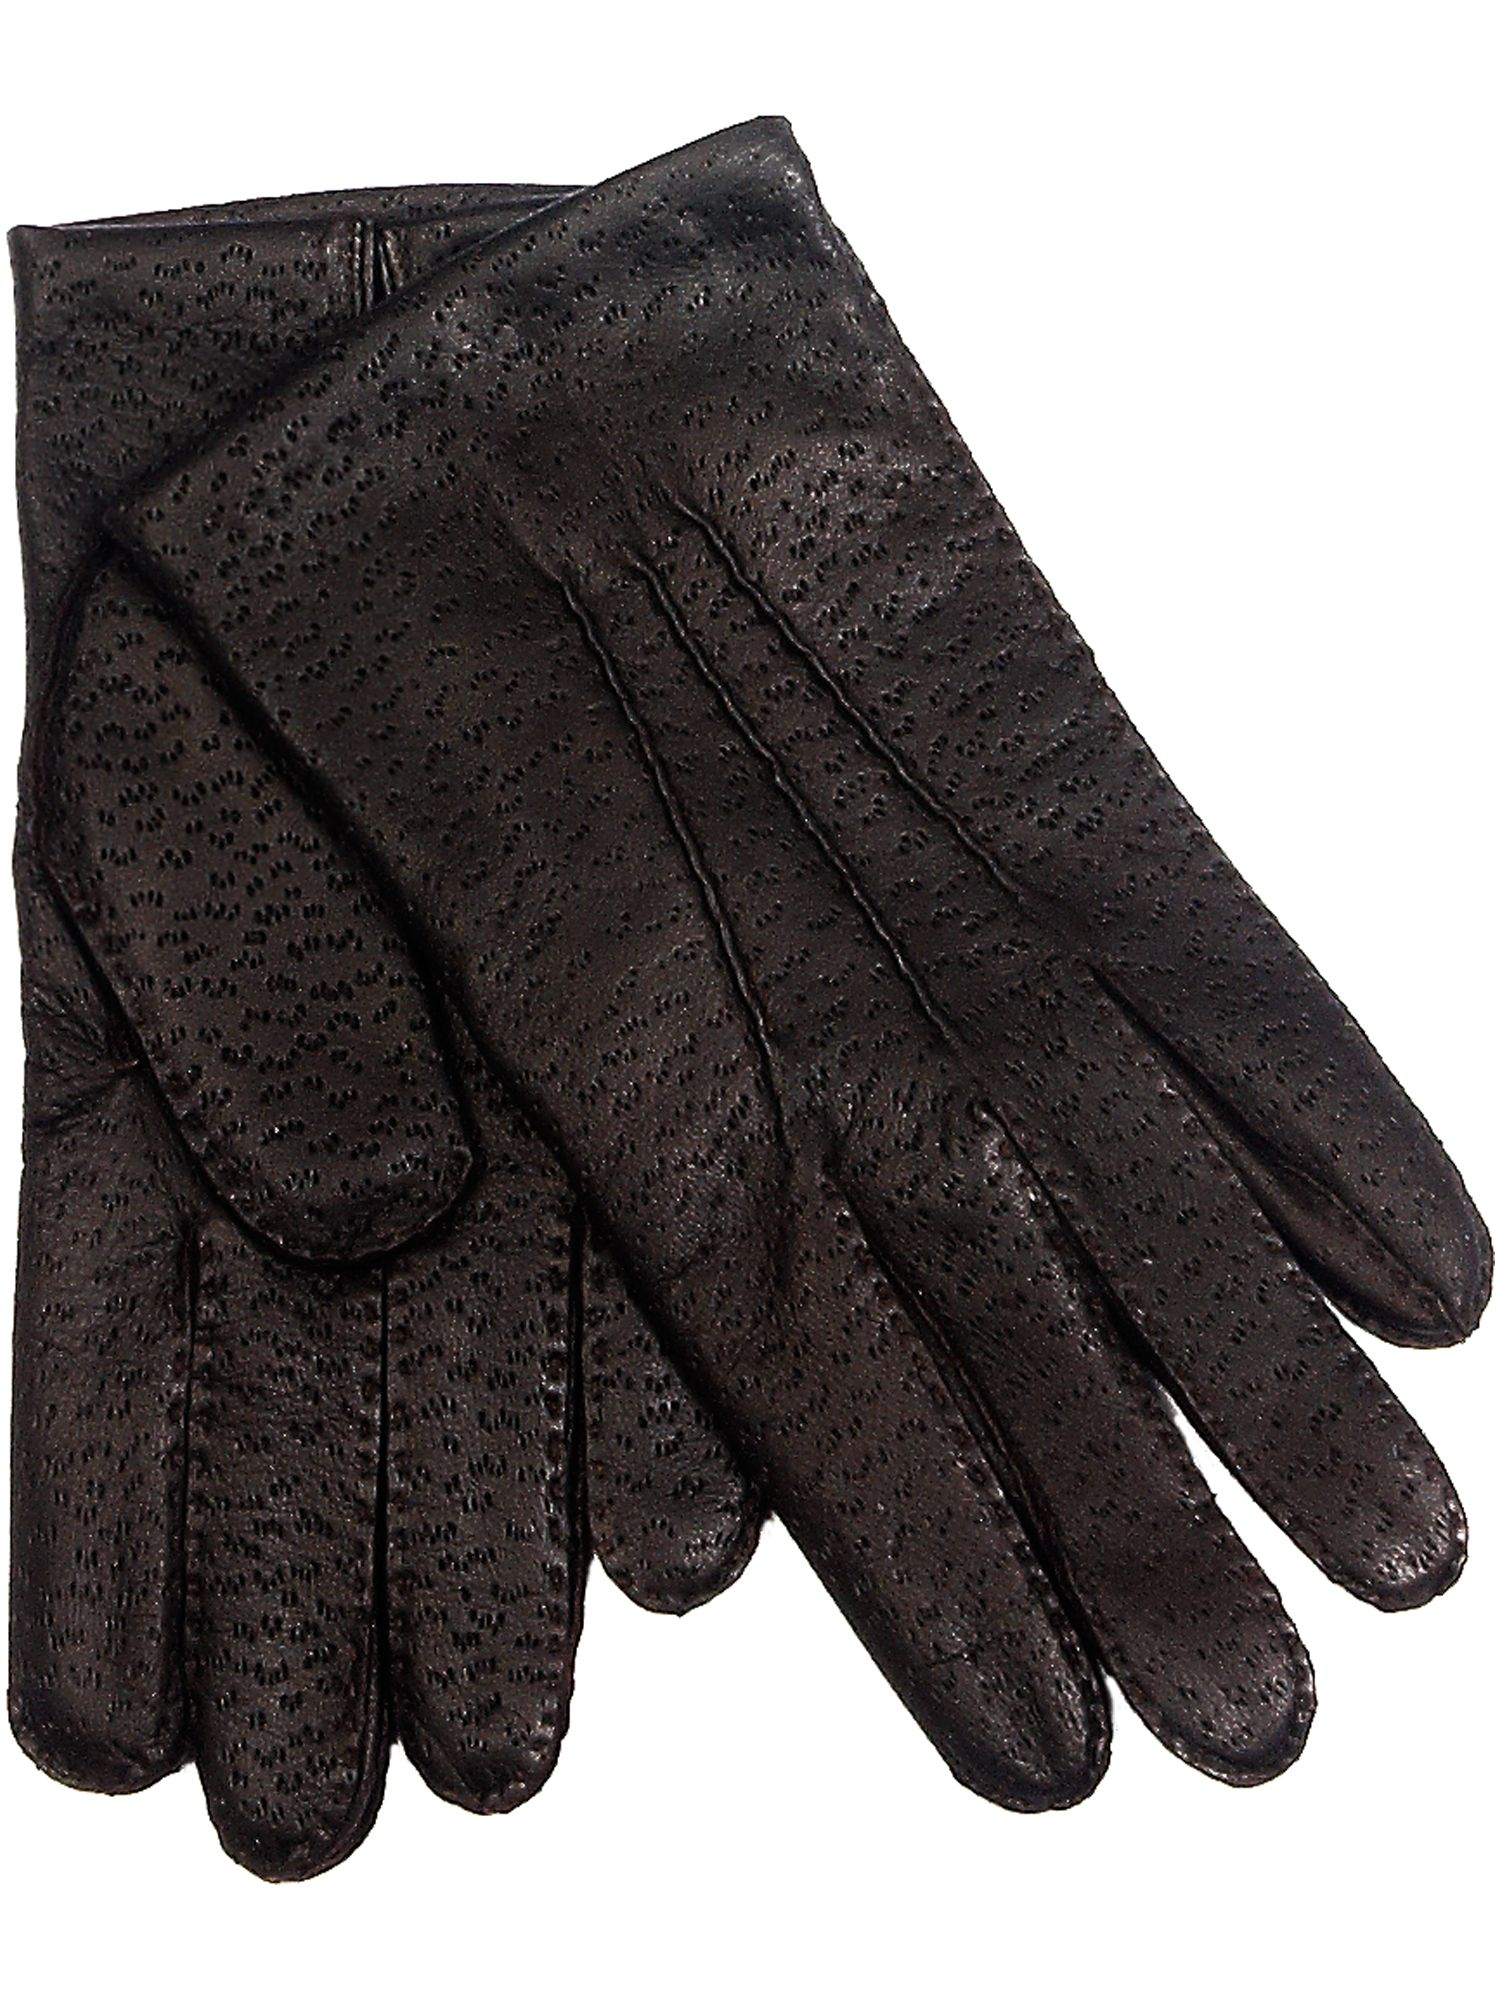 Stitched gloves with beige lining